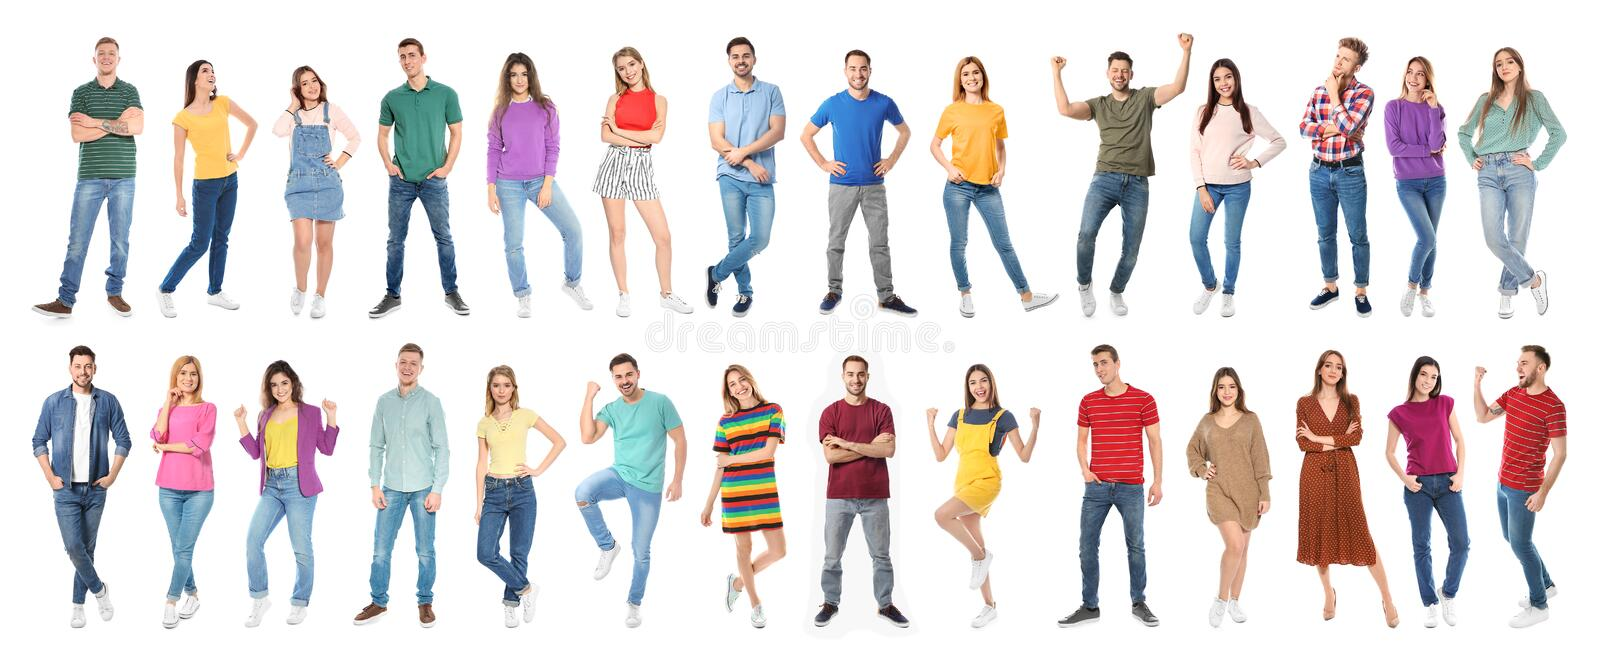 Collage of emotional people on white background royalty free stock photos